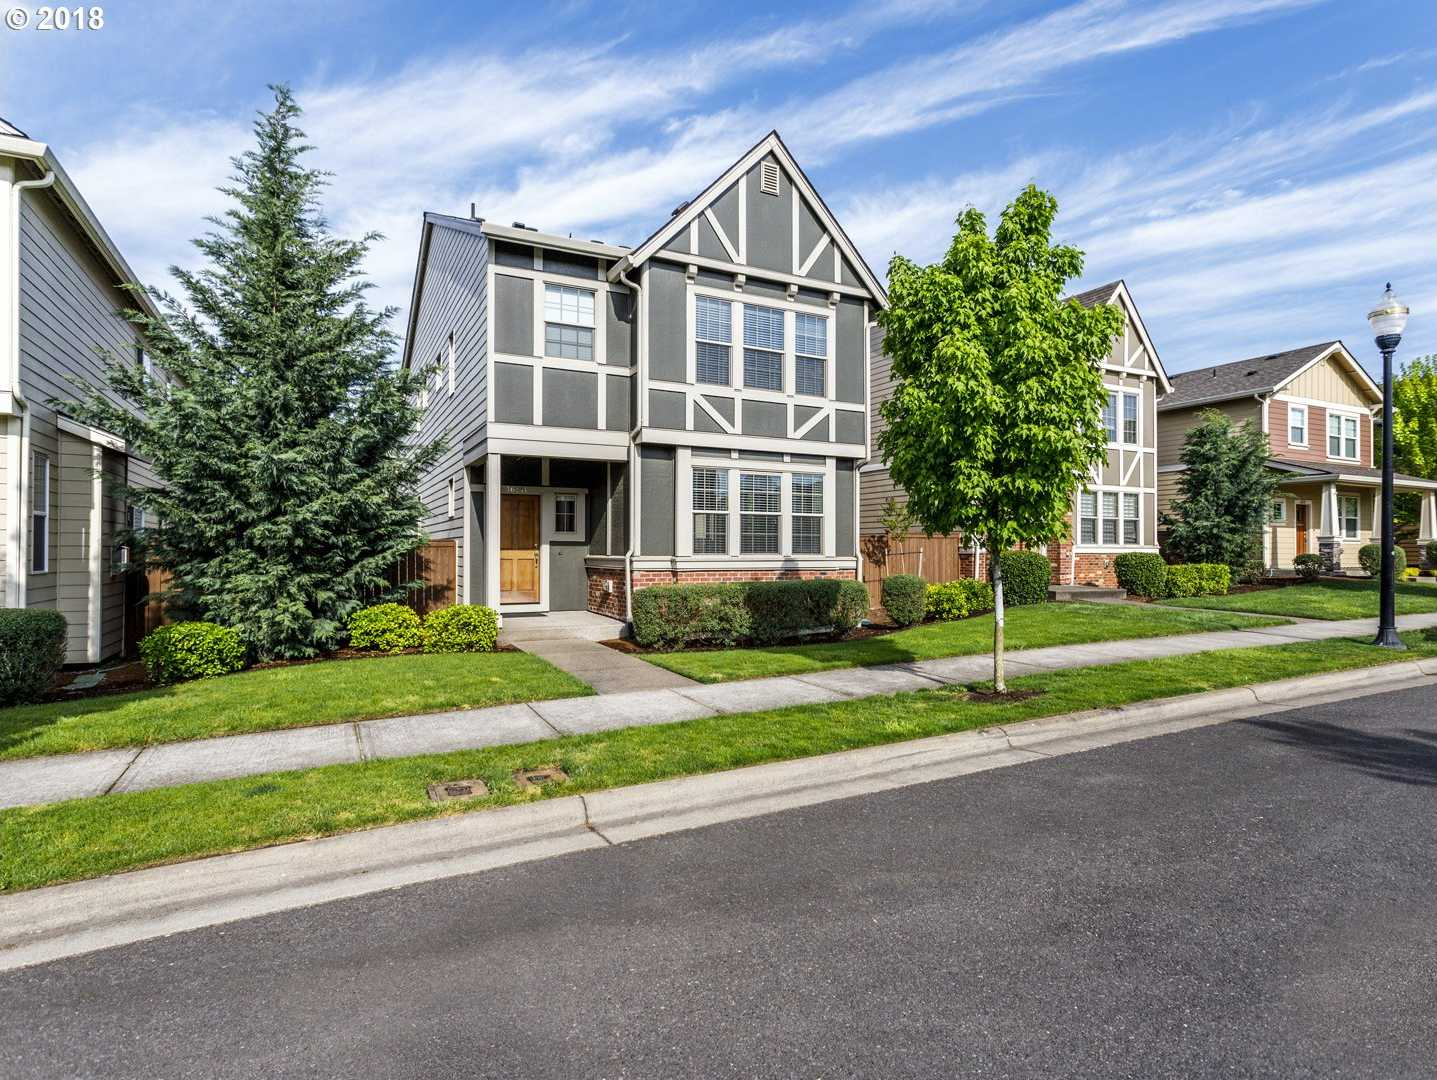 $405,000 - 4Br/3Ba -  for Sale in King City